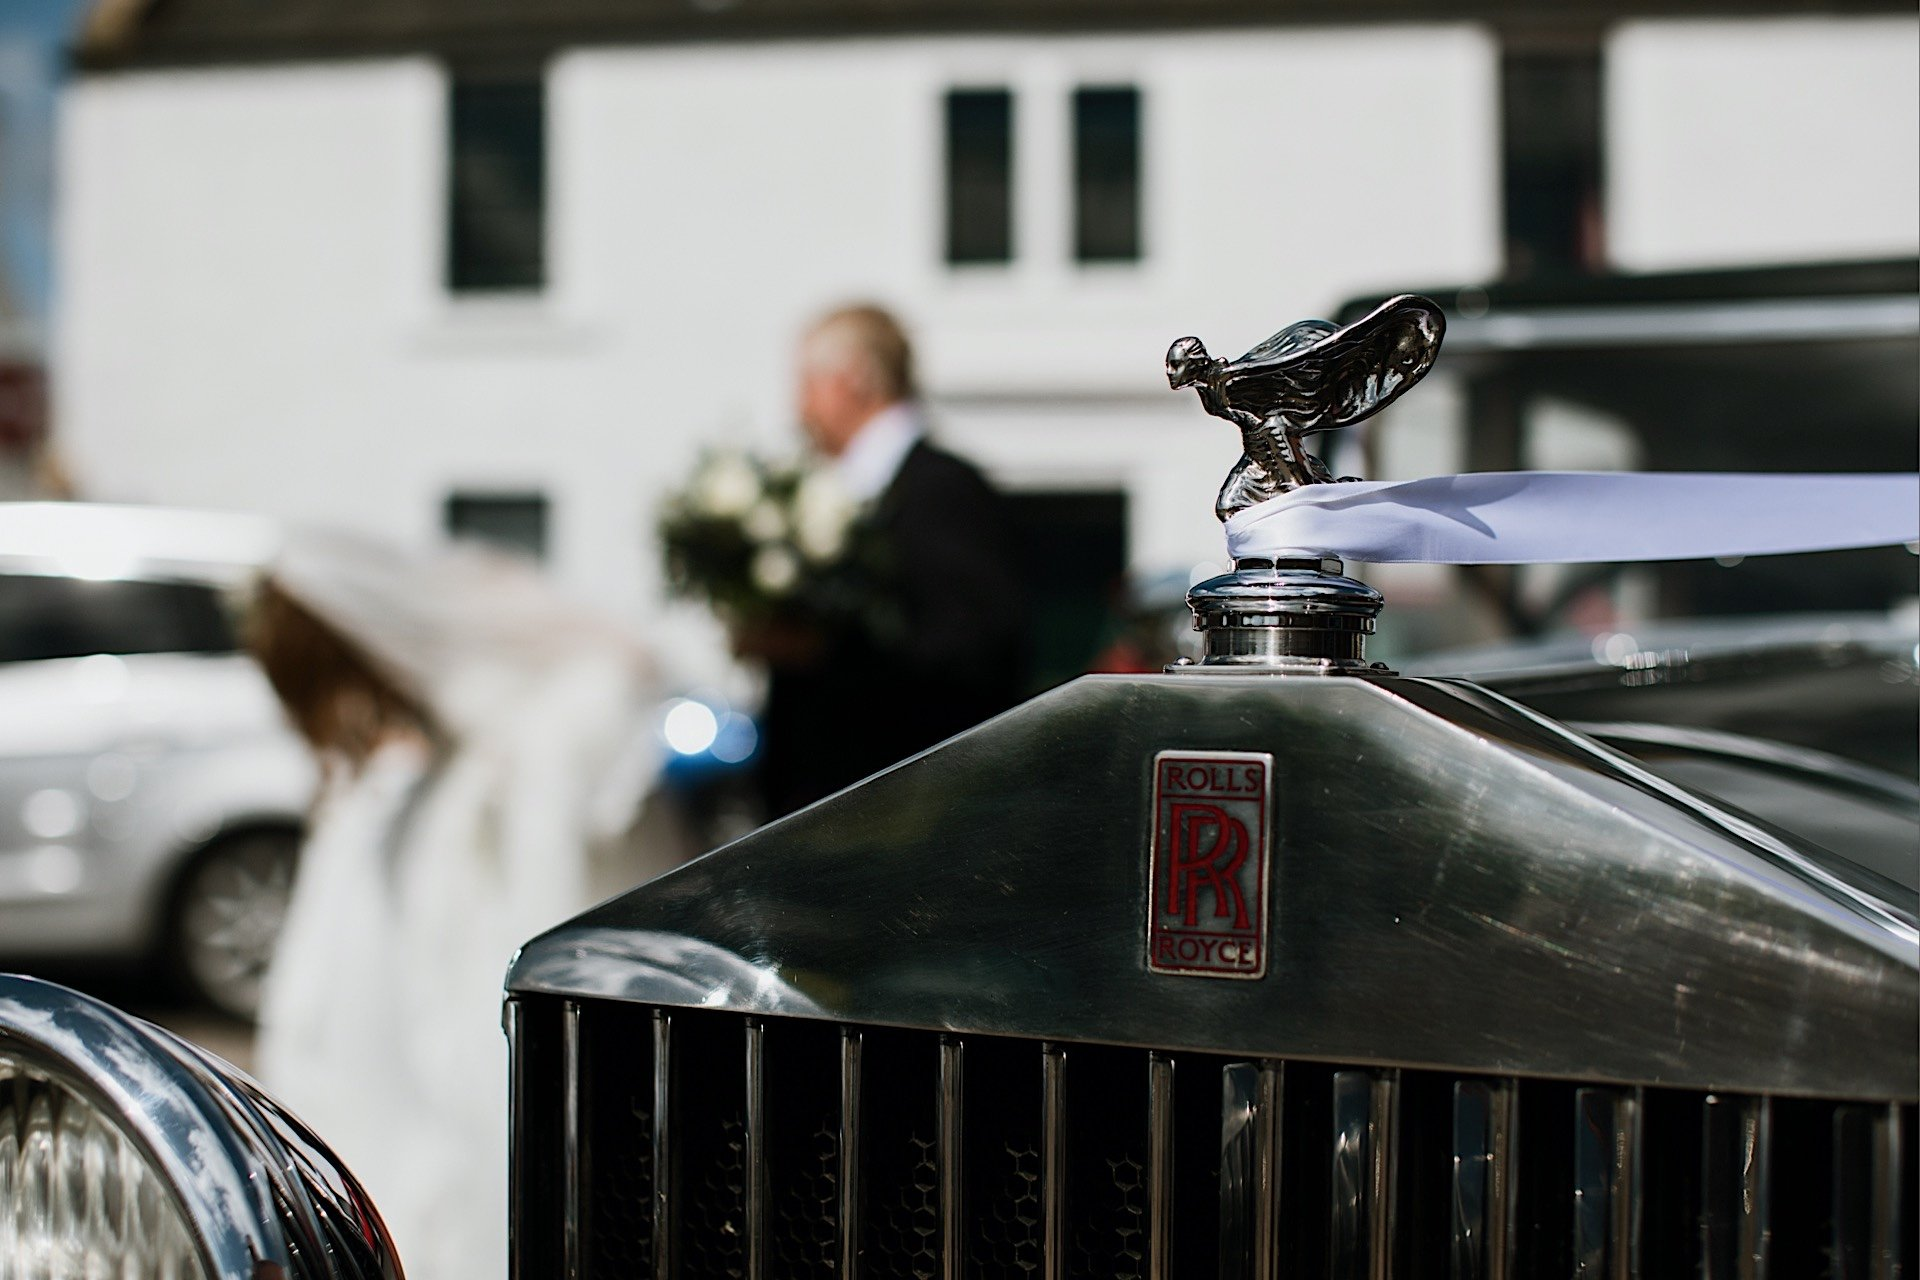 Ribbon detail With Rolls Royce Wedding